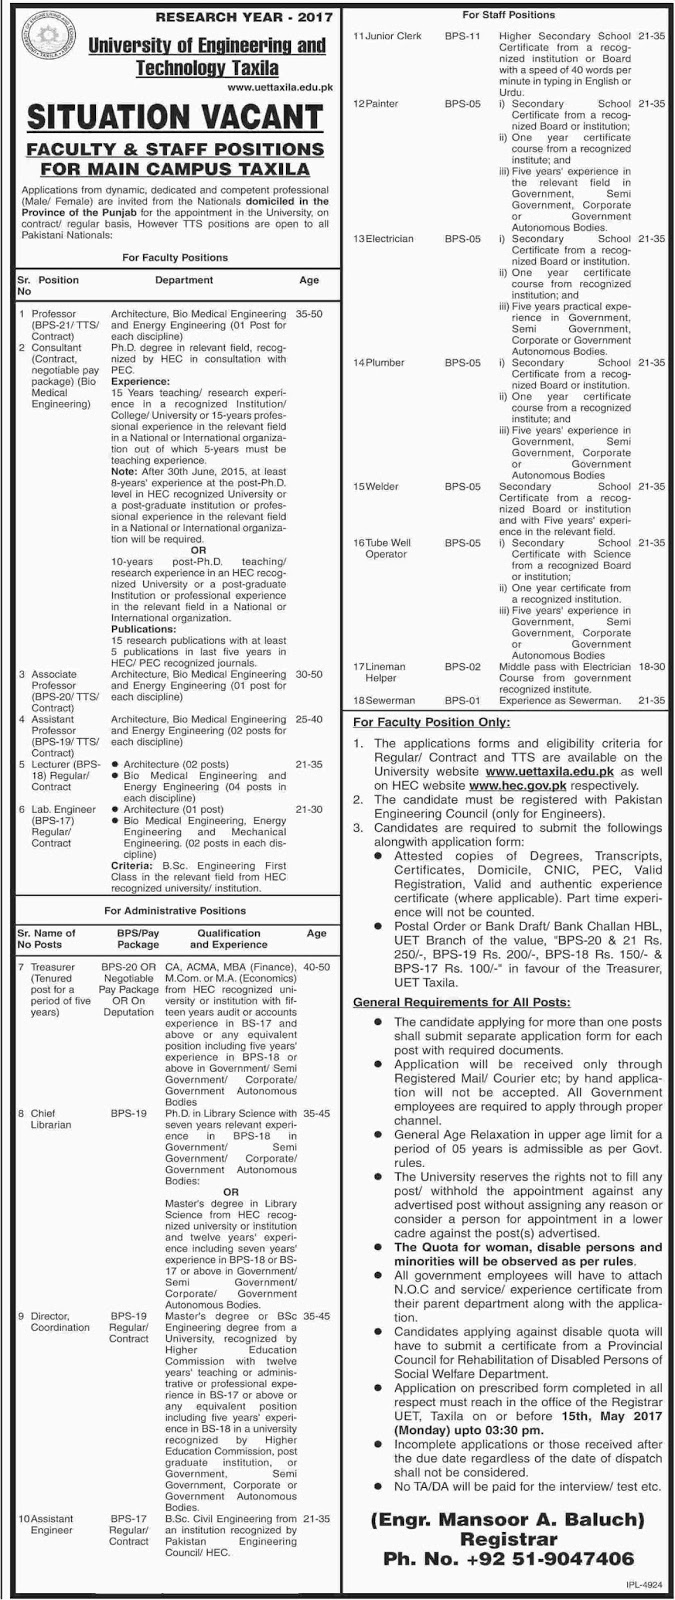 University Of Engineering And Technology Taxila Required Faculty Staff 27 Apr 2017